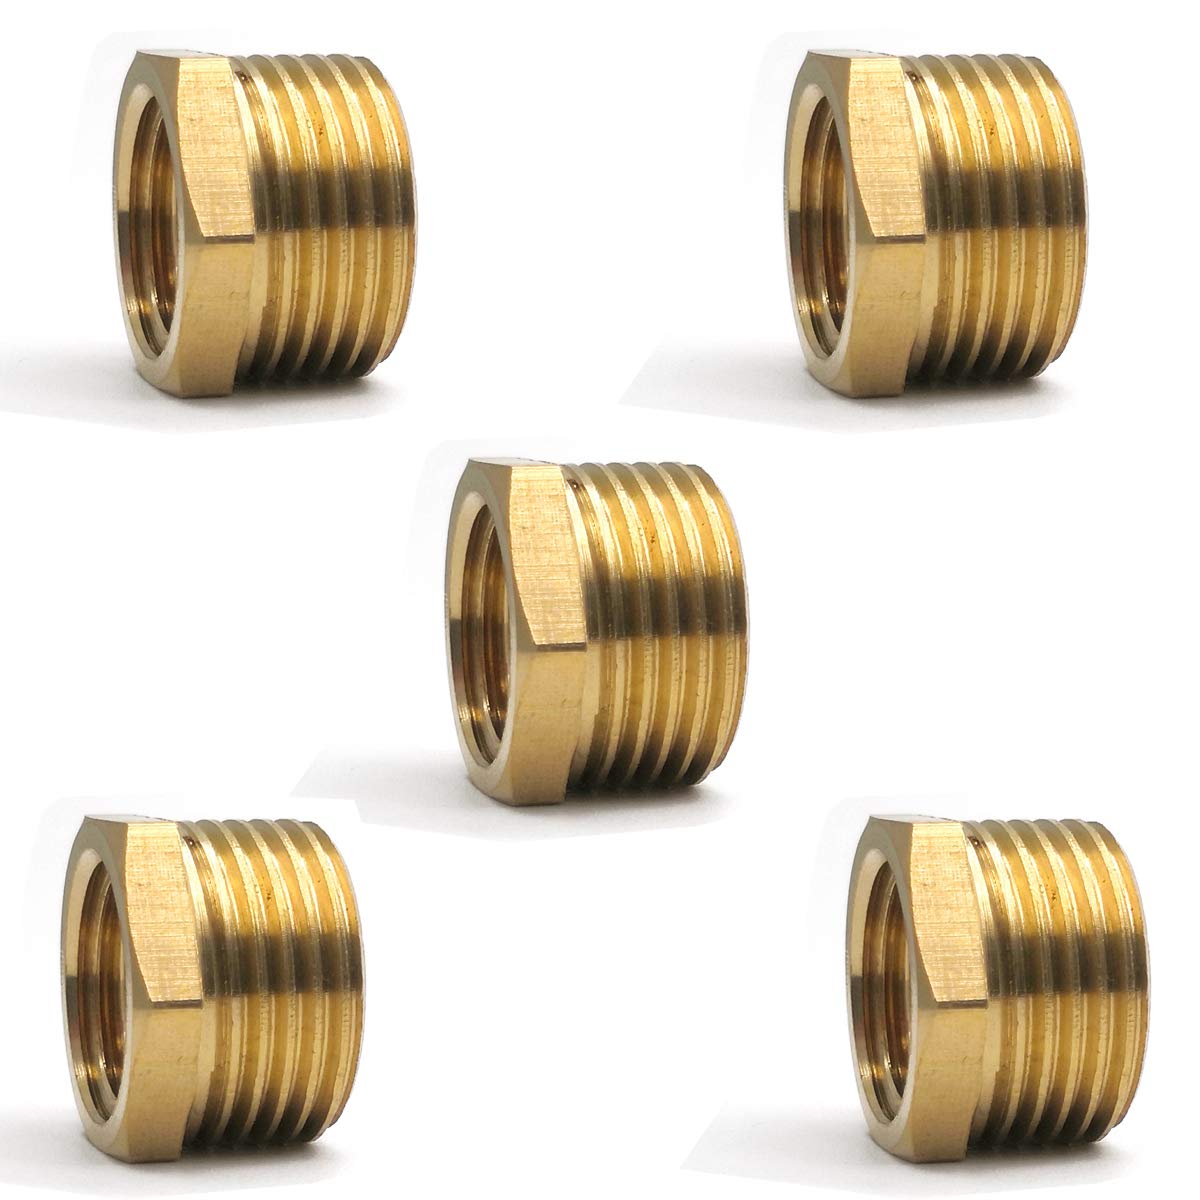 ZLYY Reducing Hex Bushing 3//8 NPT Male x 1//4 NPT Female Air Hose Adapter Brass Fitting 5 Pack